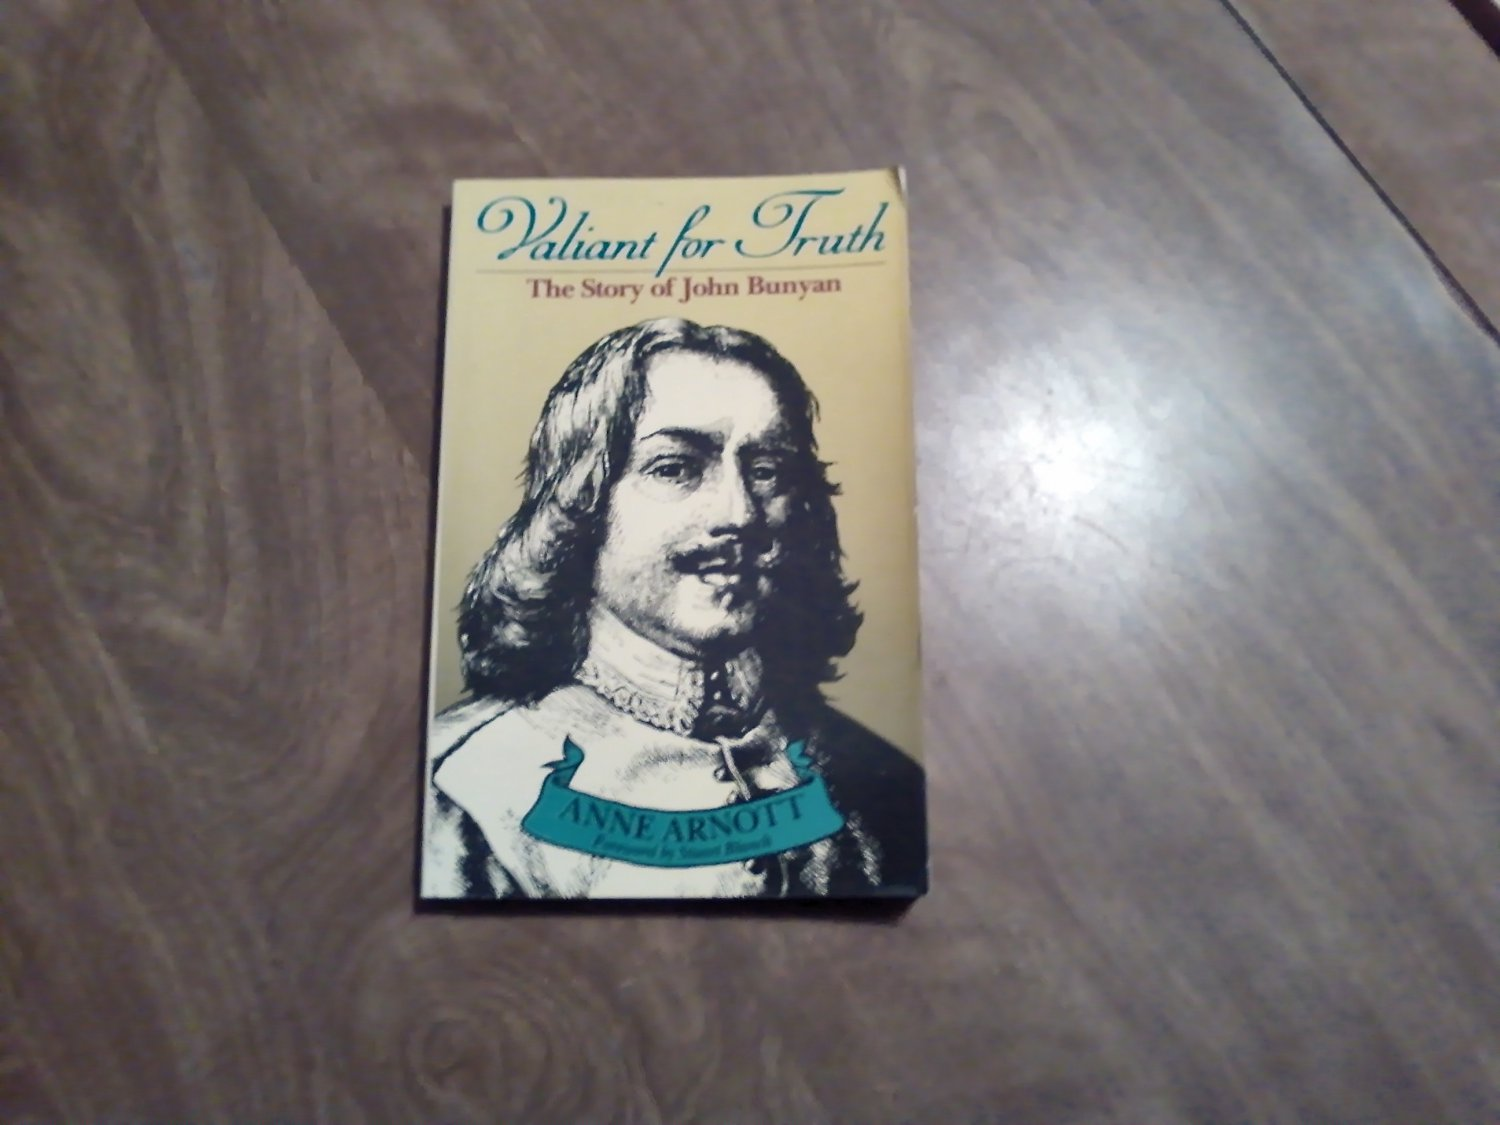 Valiant For Truth The Story of John Bunyan by Anne Arnott (1985) (WCC4) Biography